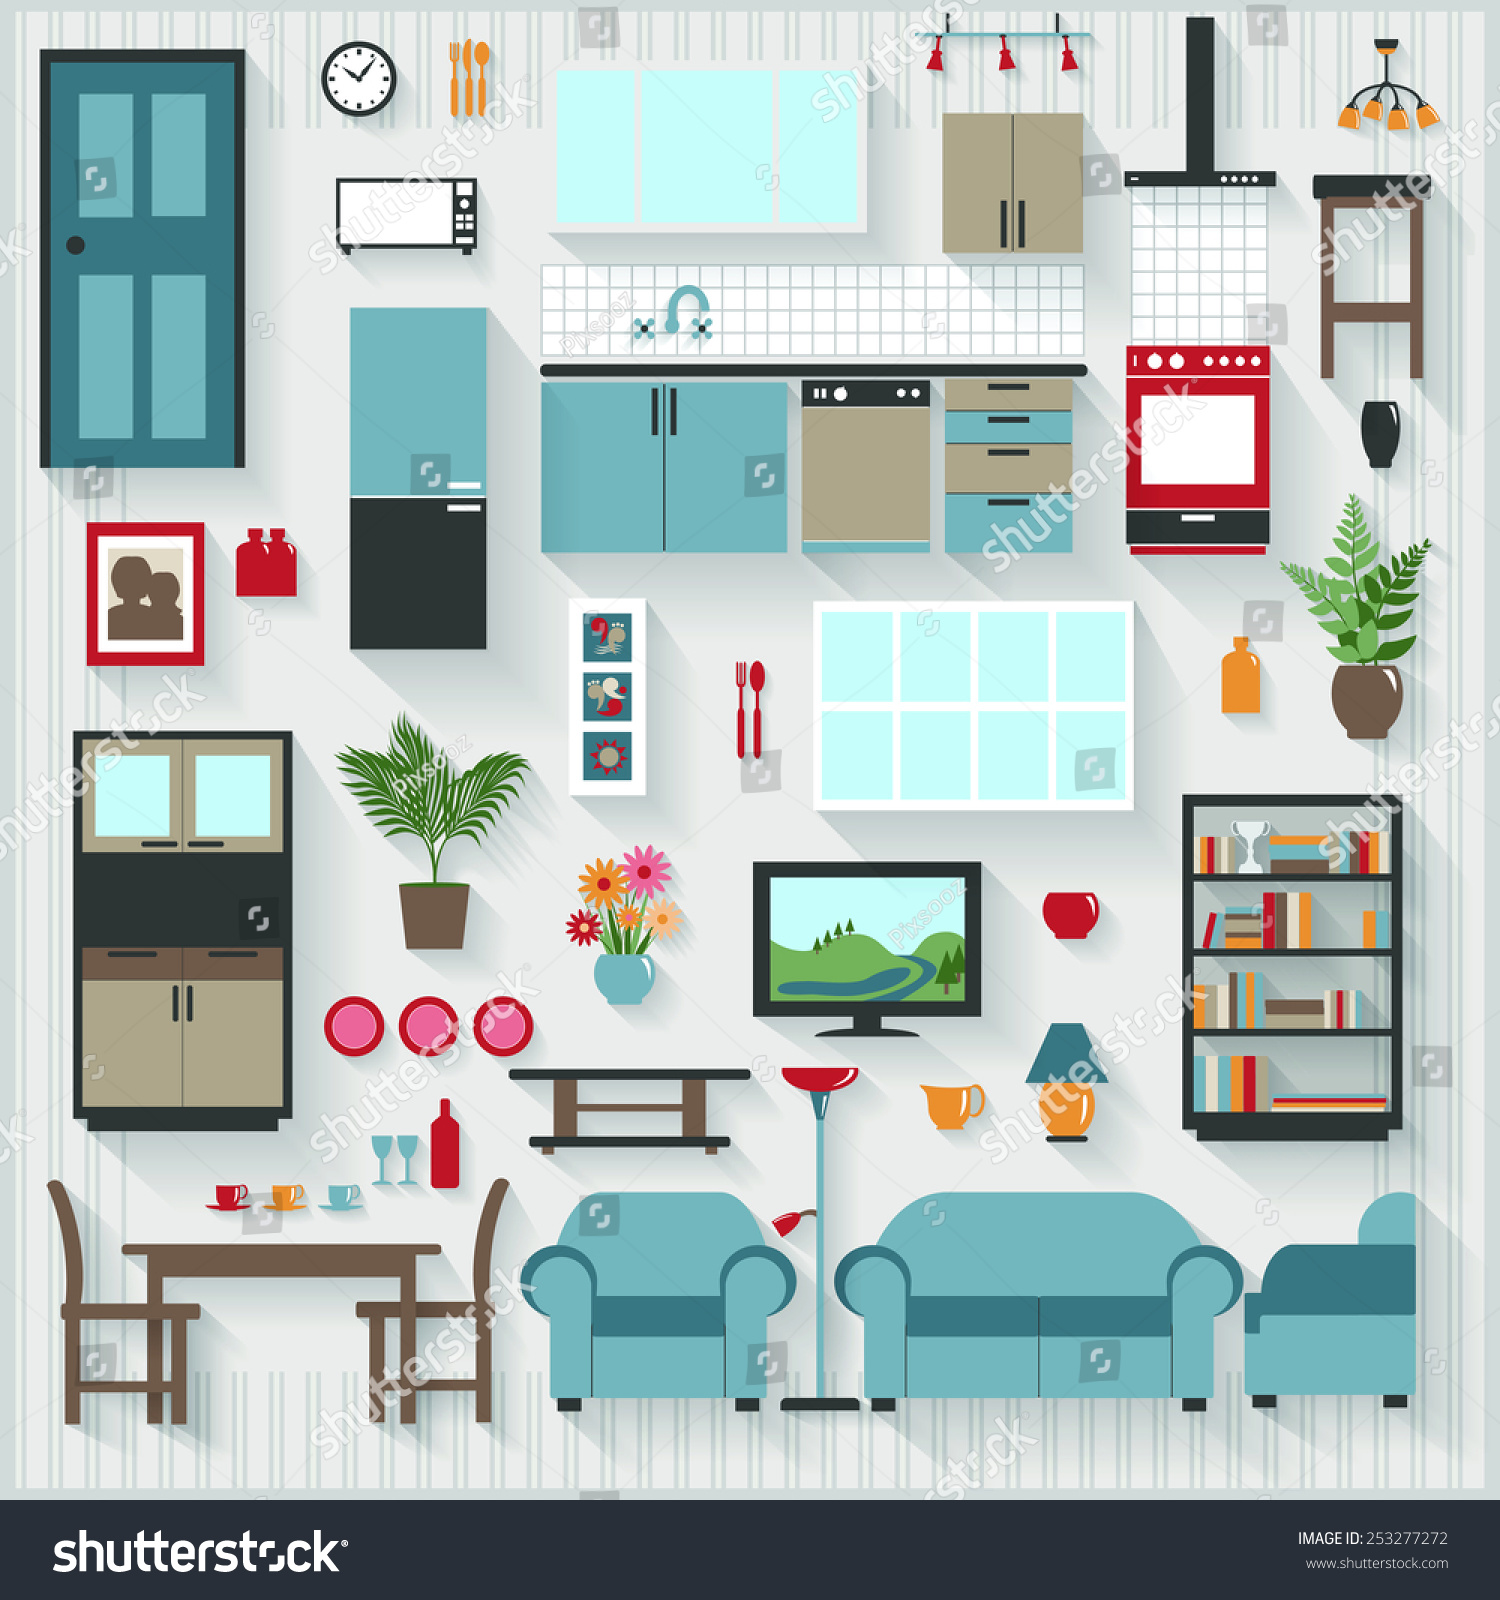 Furniture Long Shadows Icons Lounge Dining Stock Vector 253277272 ...